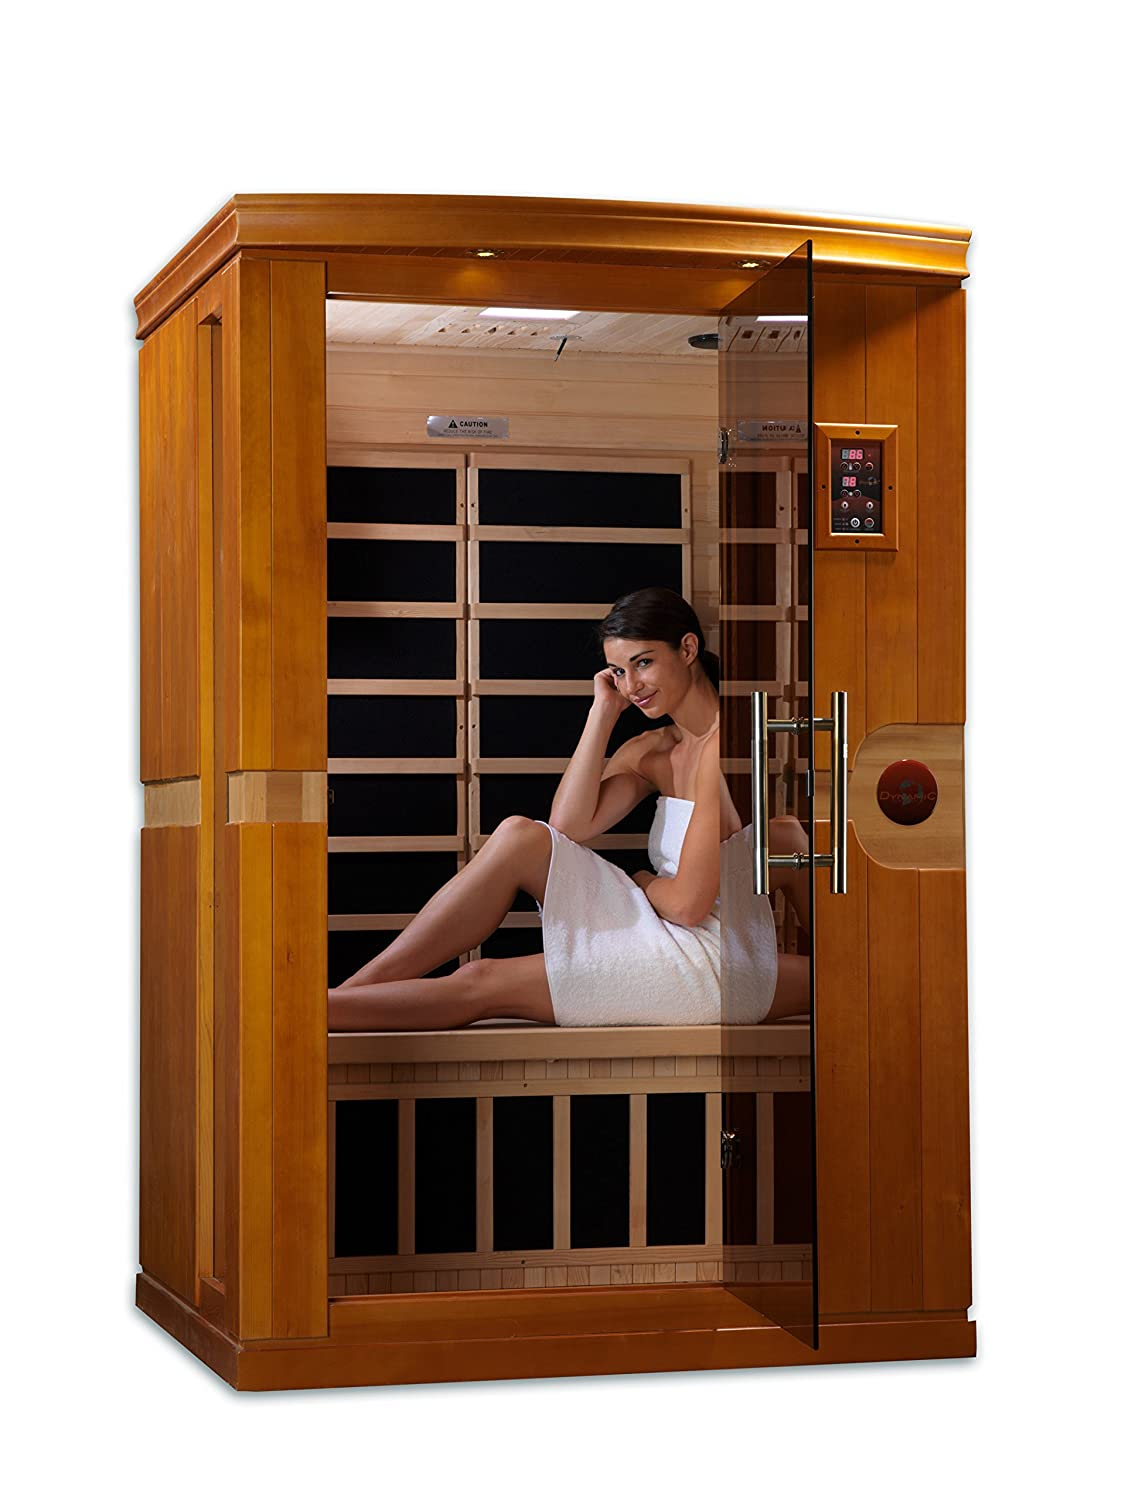 saunas kits accessories health benefits of sauna. Black Bedroom Furniture Sets. Home Design Ideas